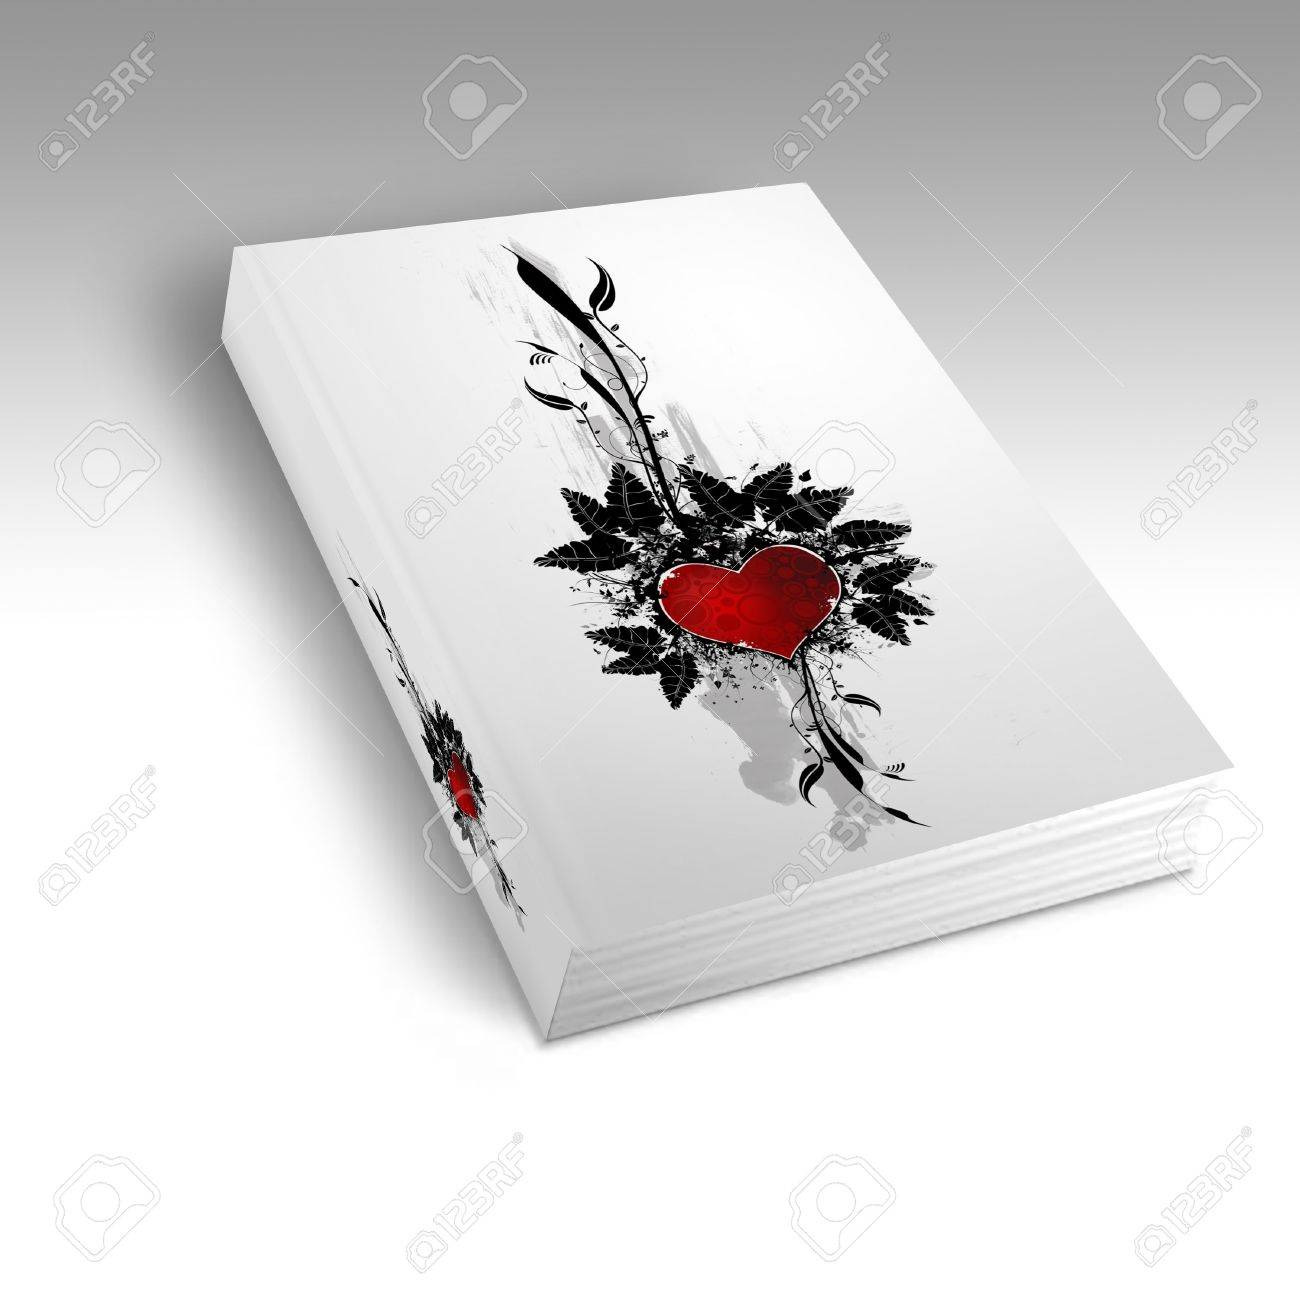 Book with a heart design on the front Stock Photo - 4116519